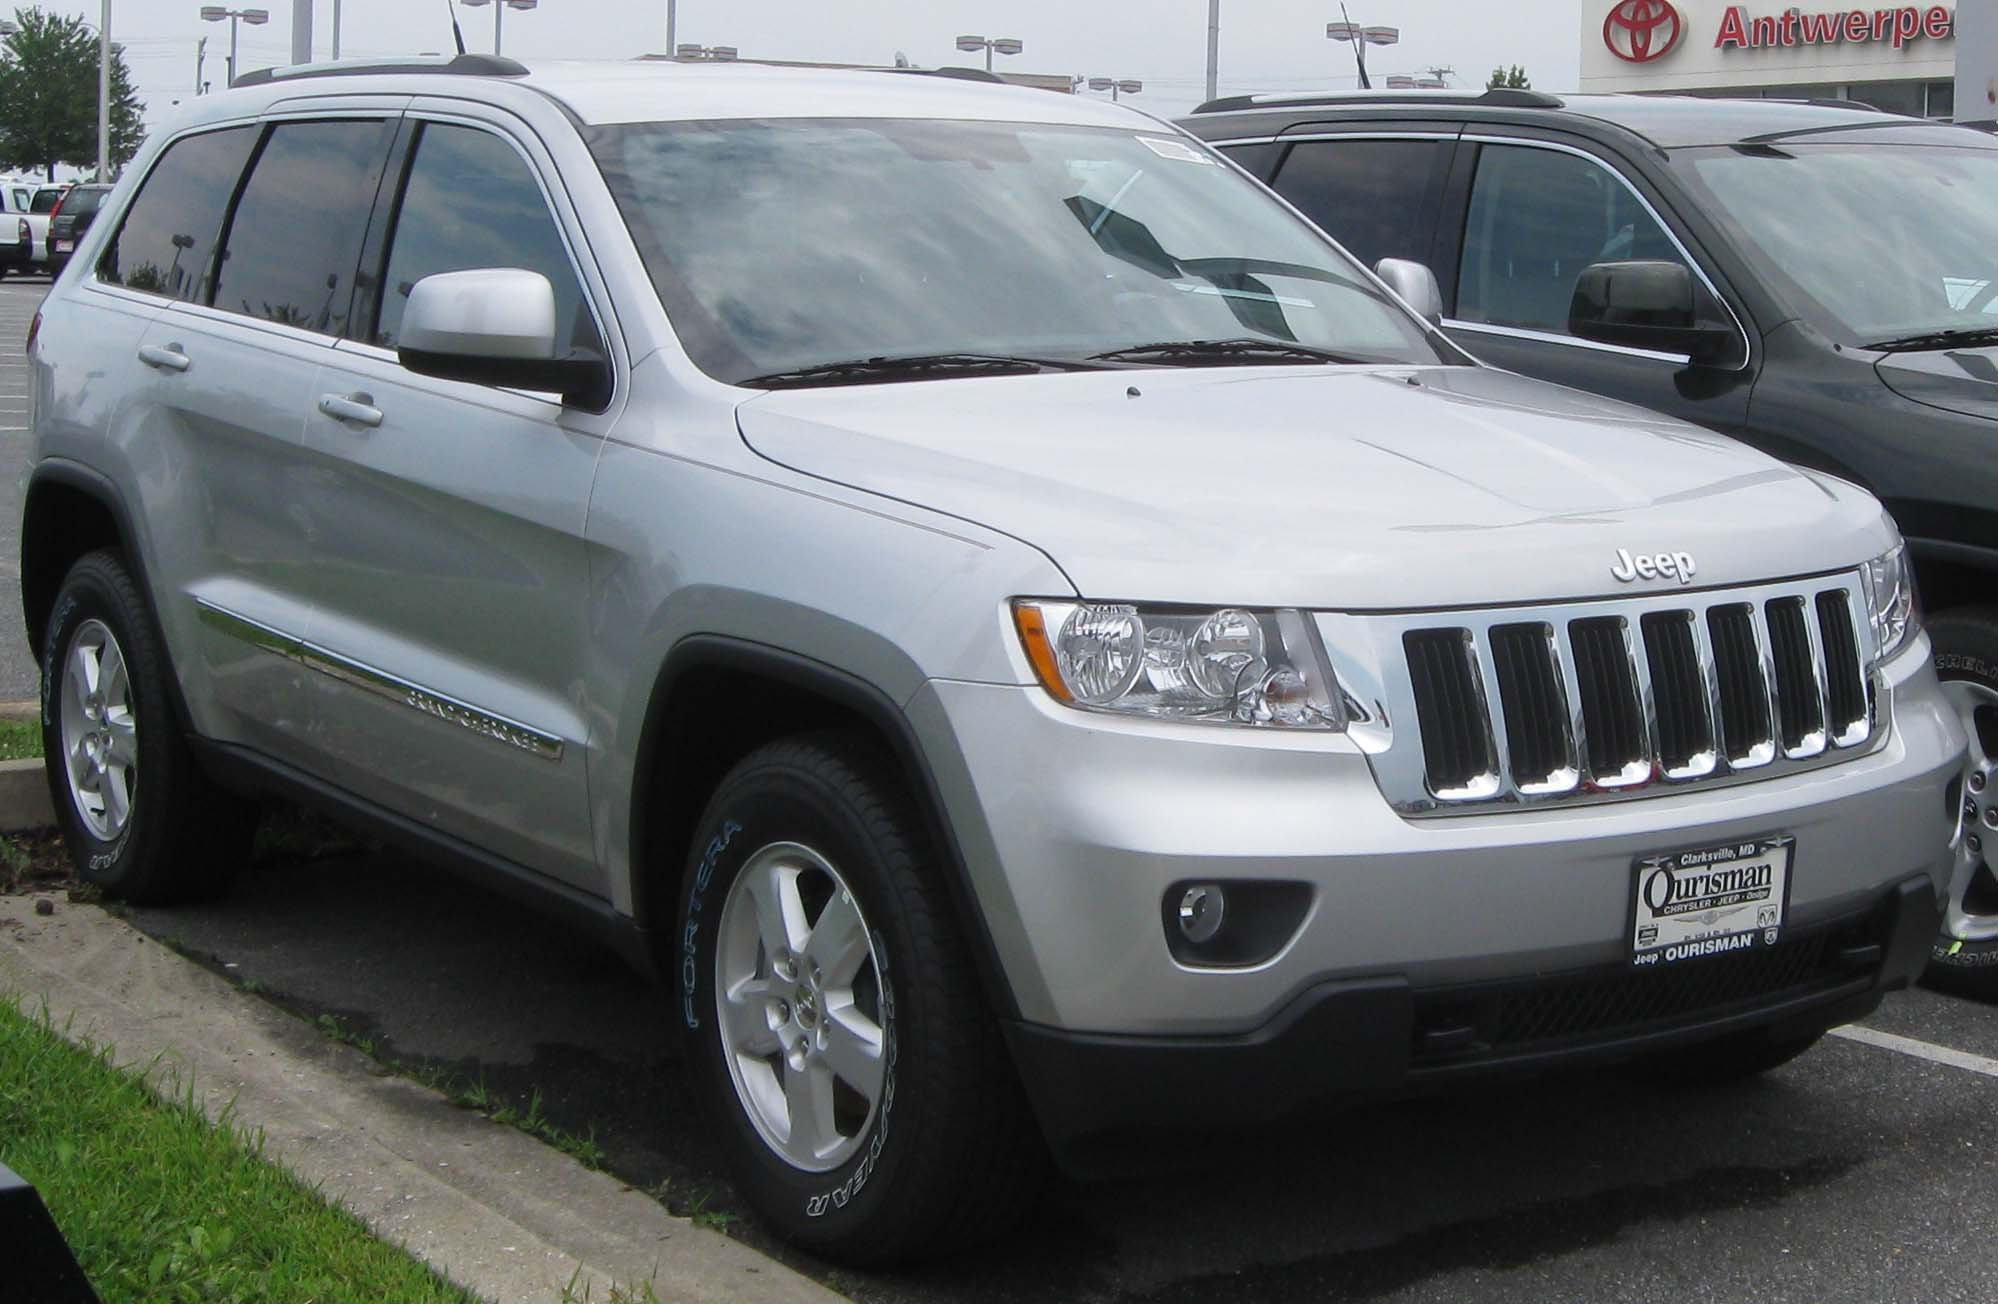 file:2011 jeep grand cherokee -- 08-12-2010 1 - wikimedia commons